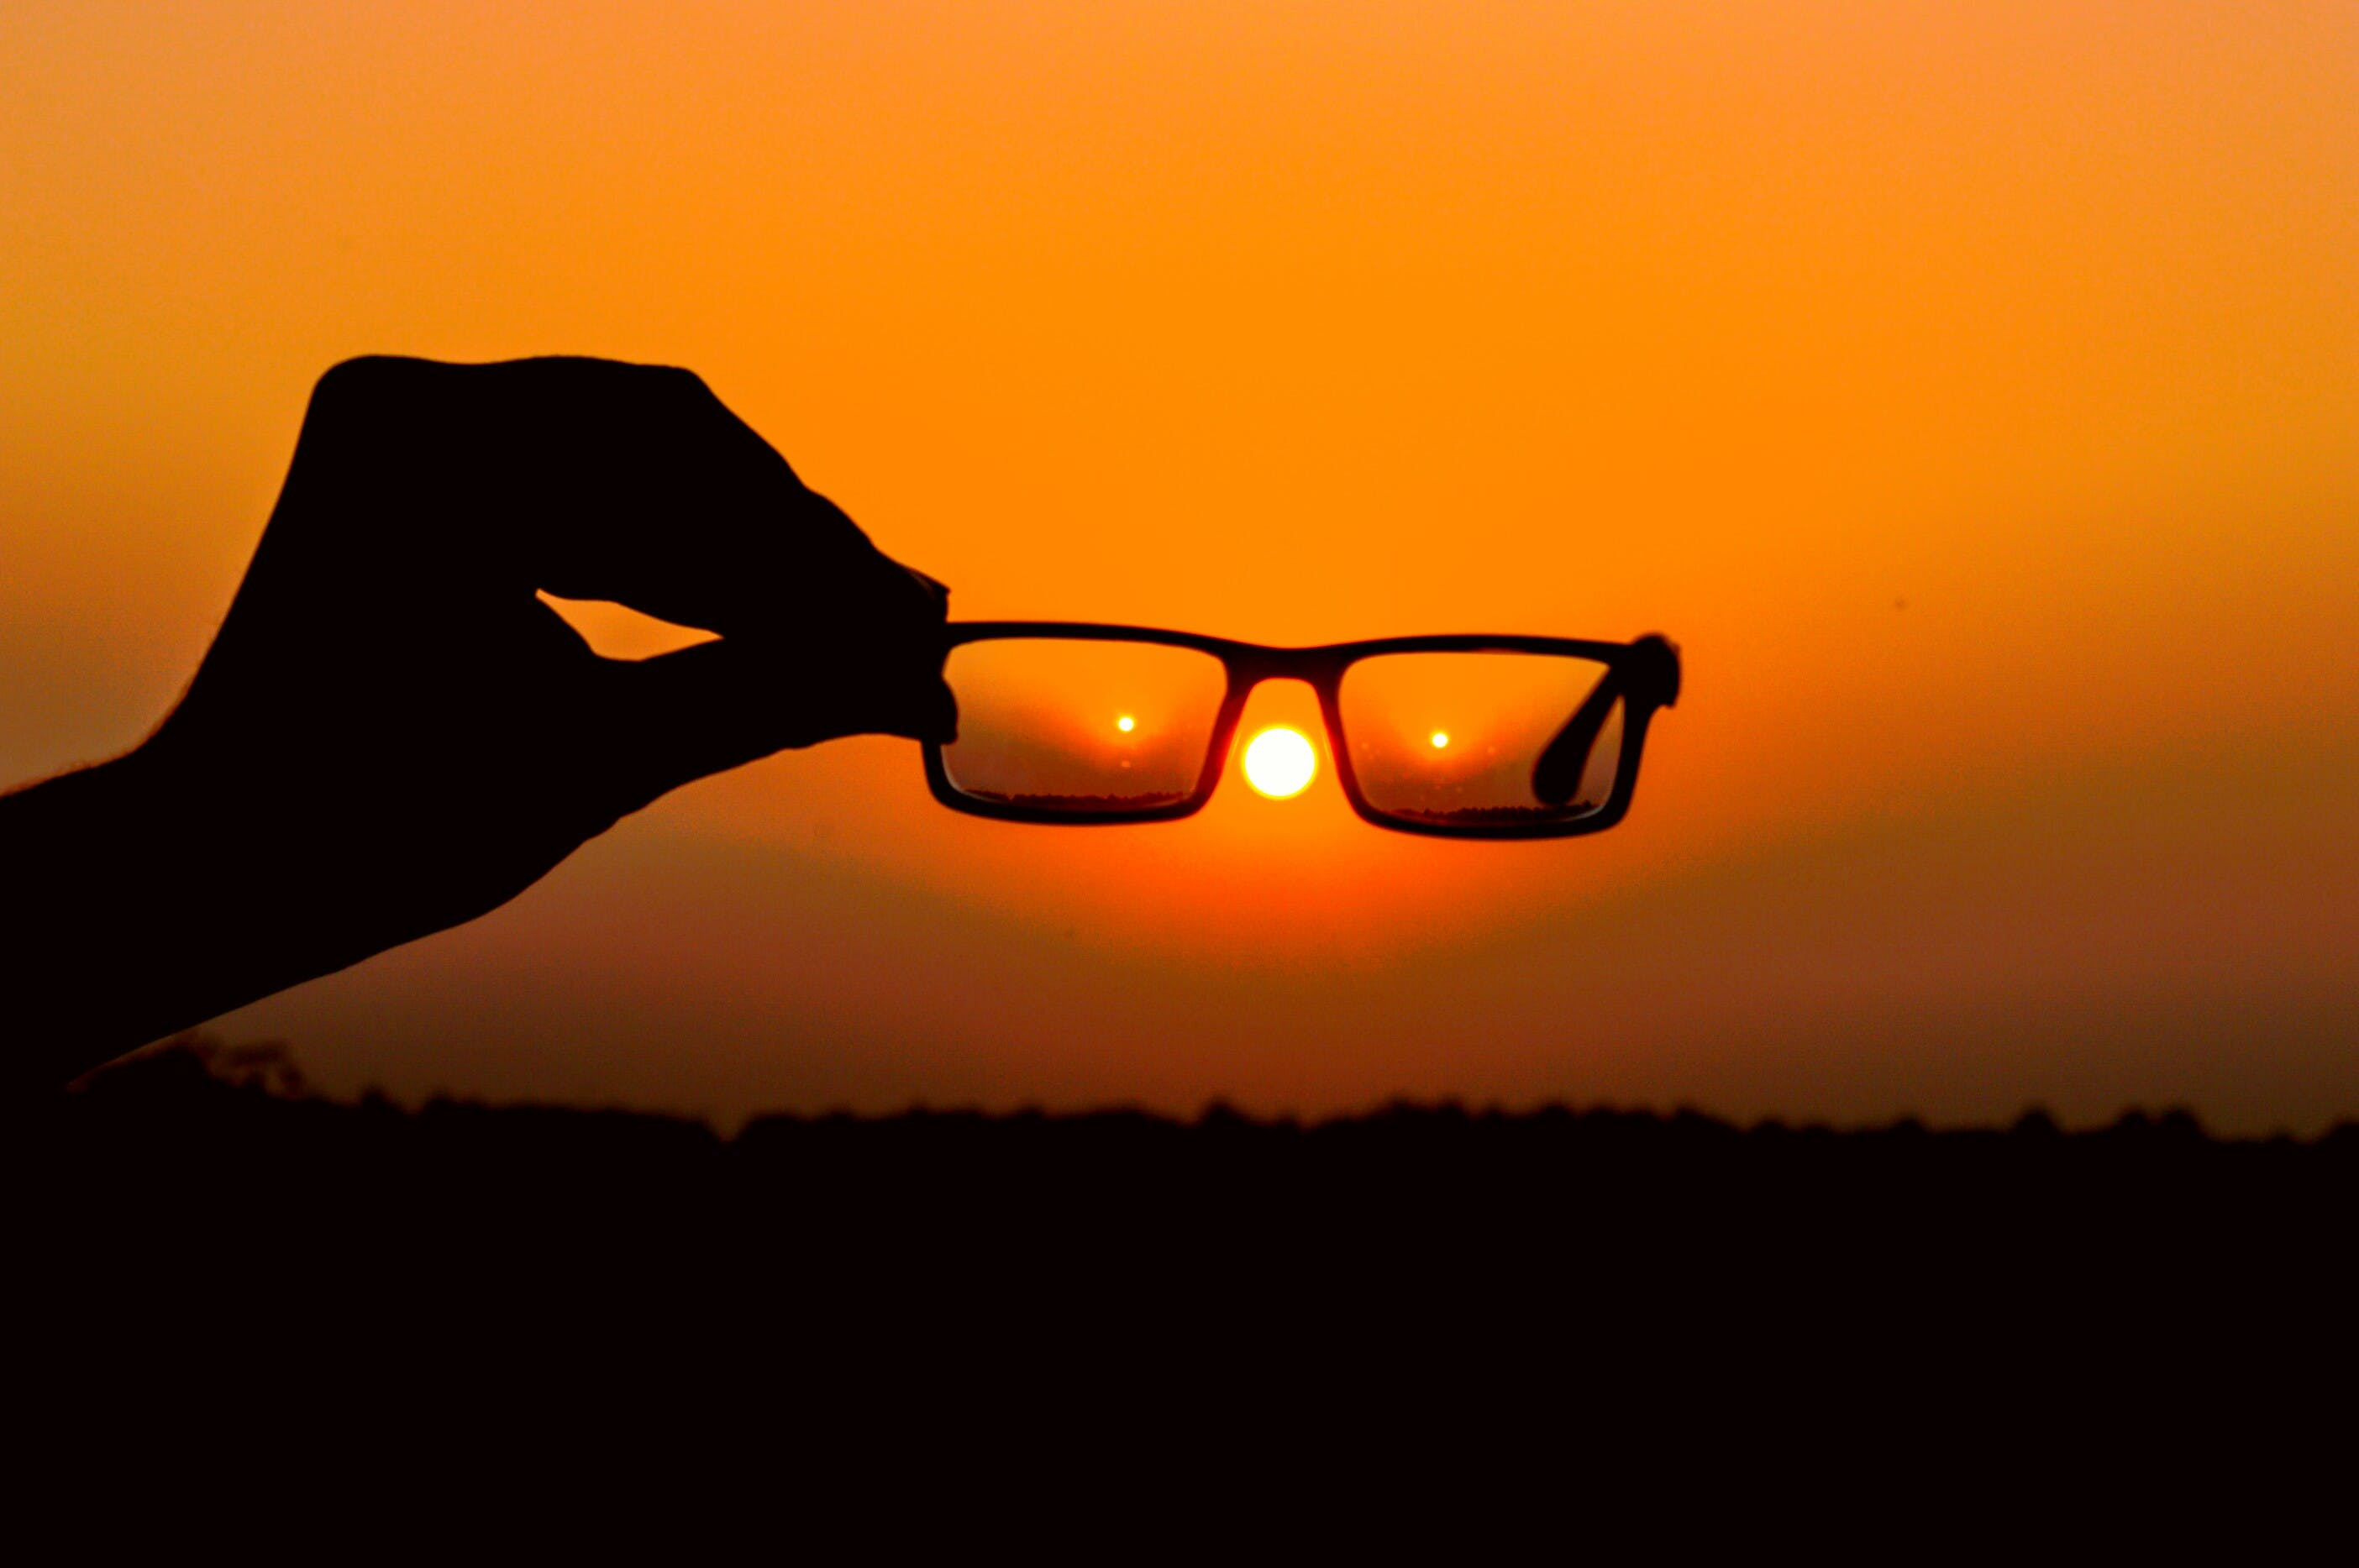 Silhouette of Person's Hand Holding Eyeglasses during Golden Hour